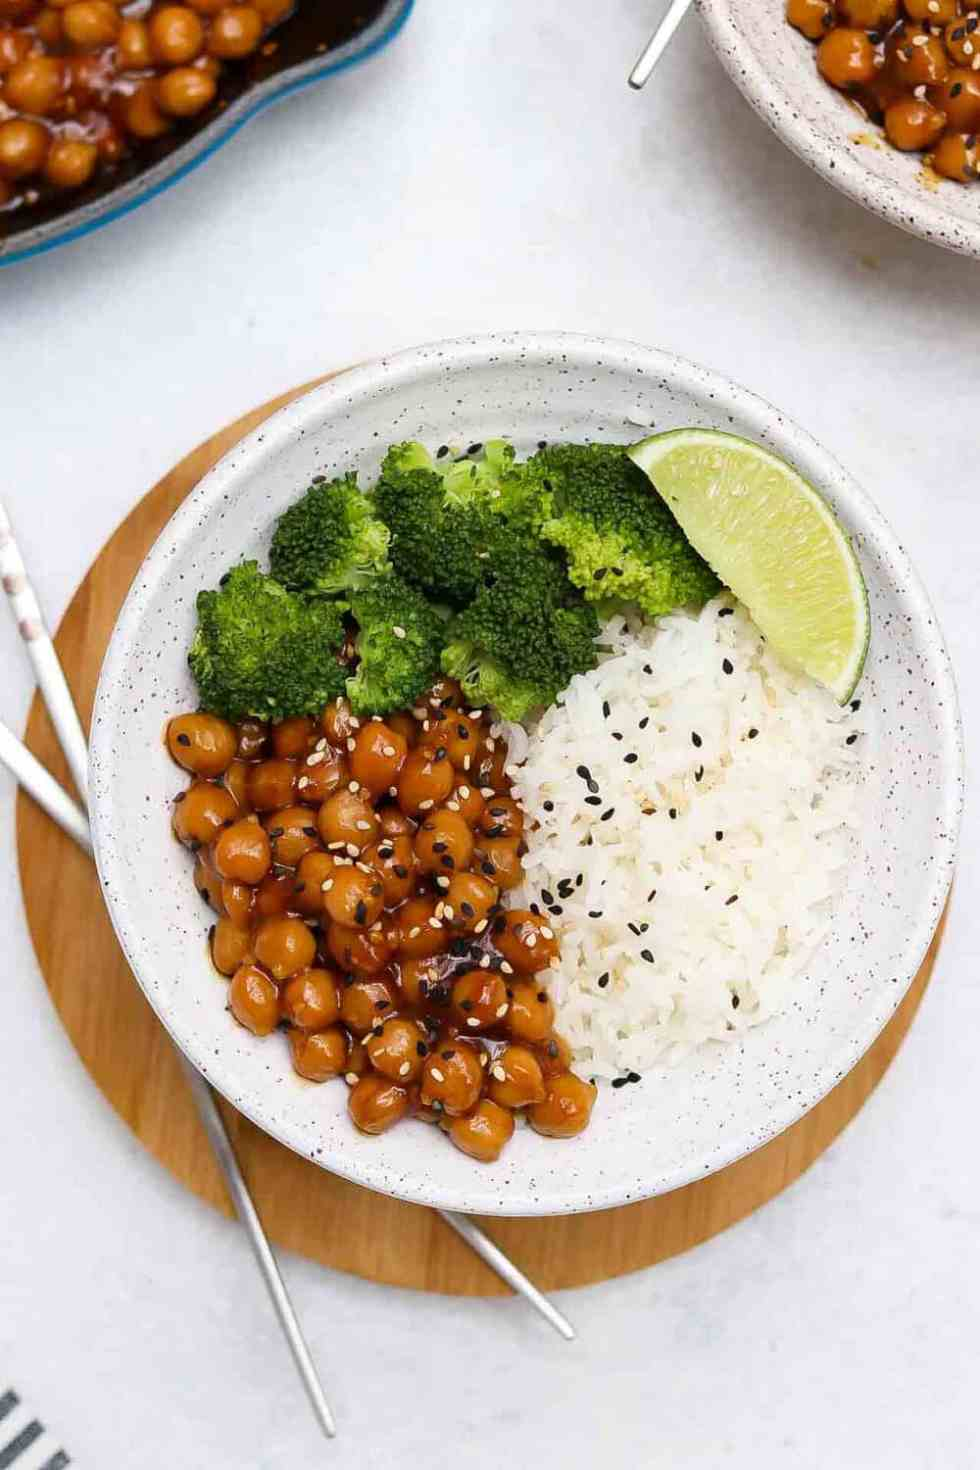 Speckled bowl with sesame chickpeas, white rice, broccoli, and a lime wedge.